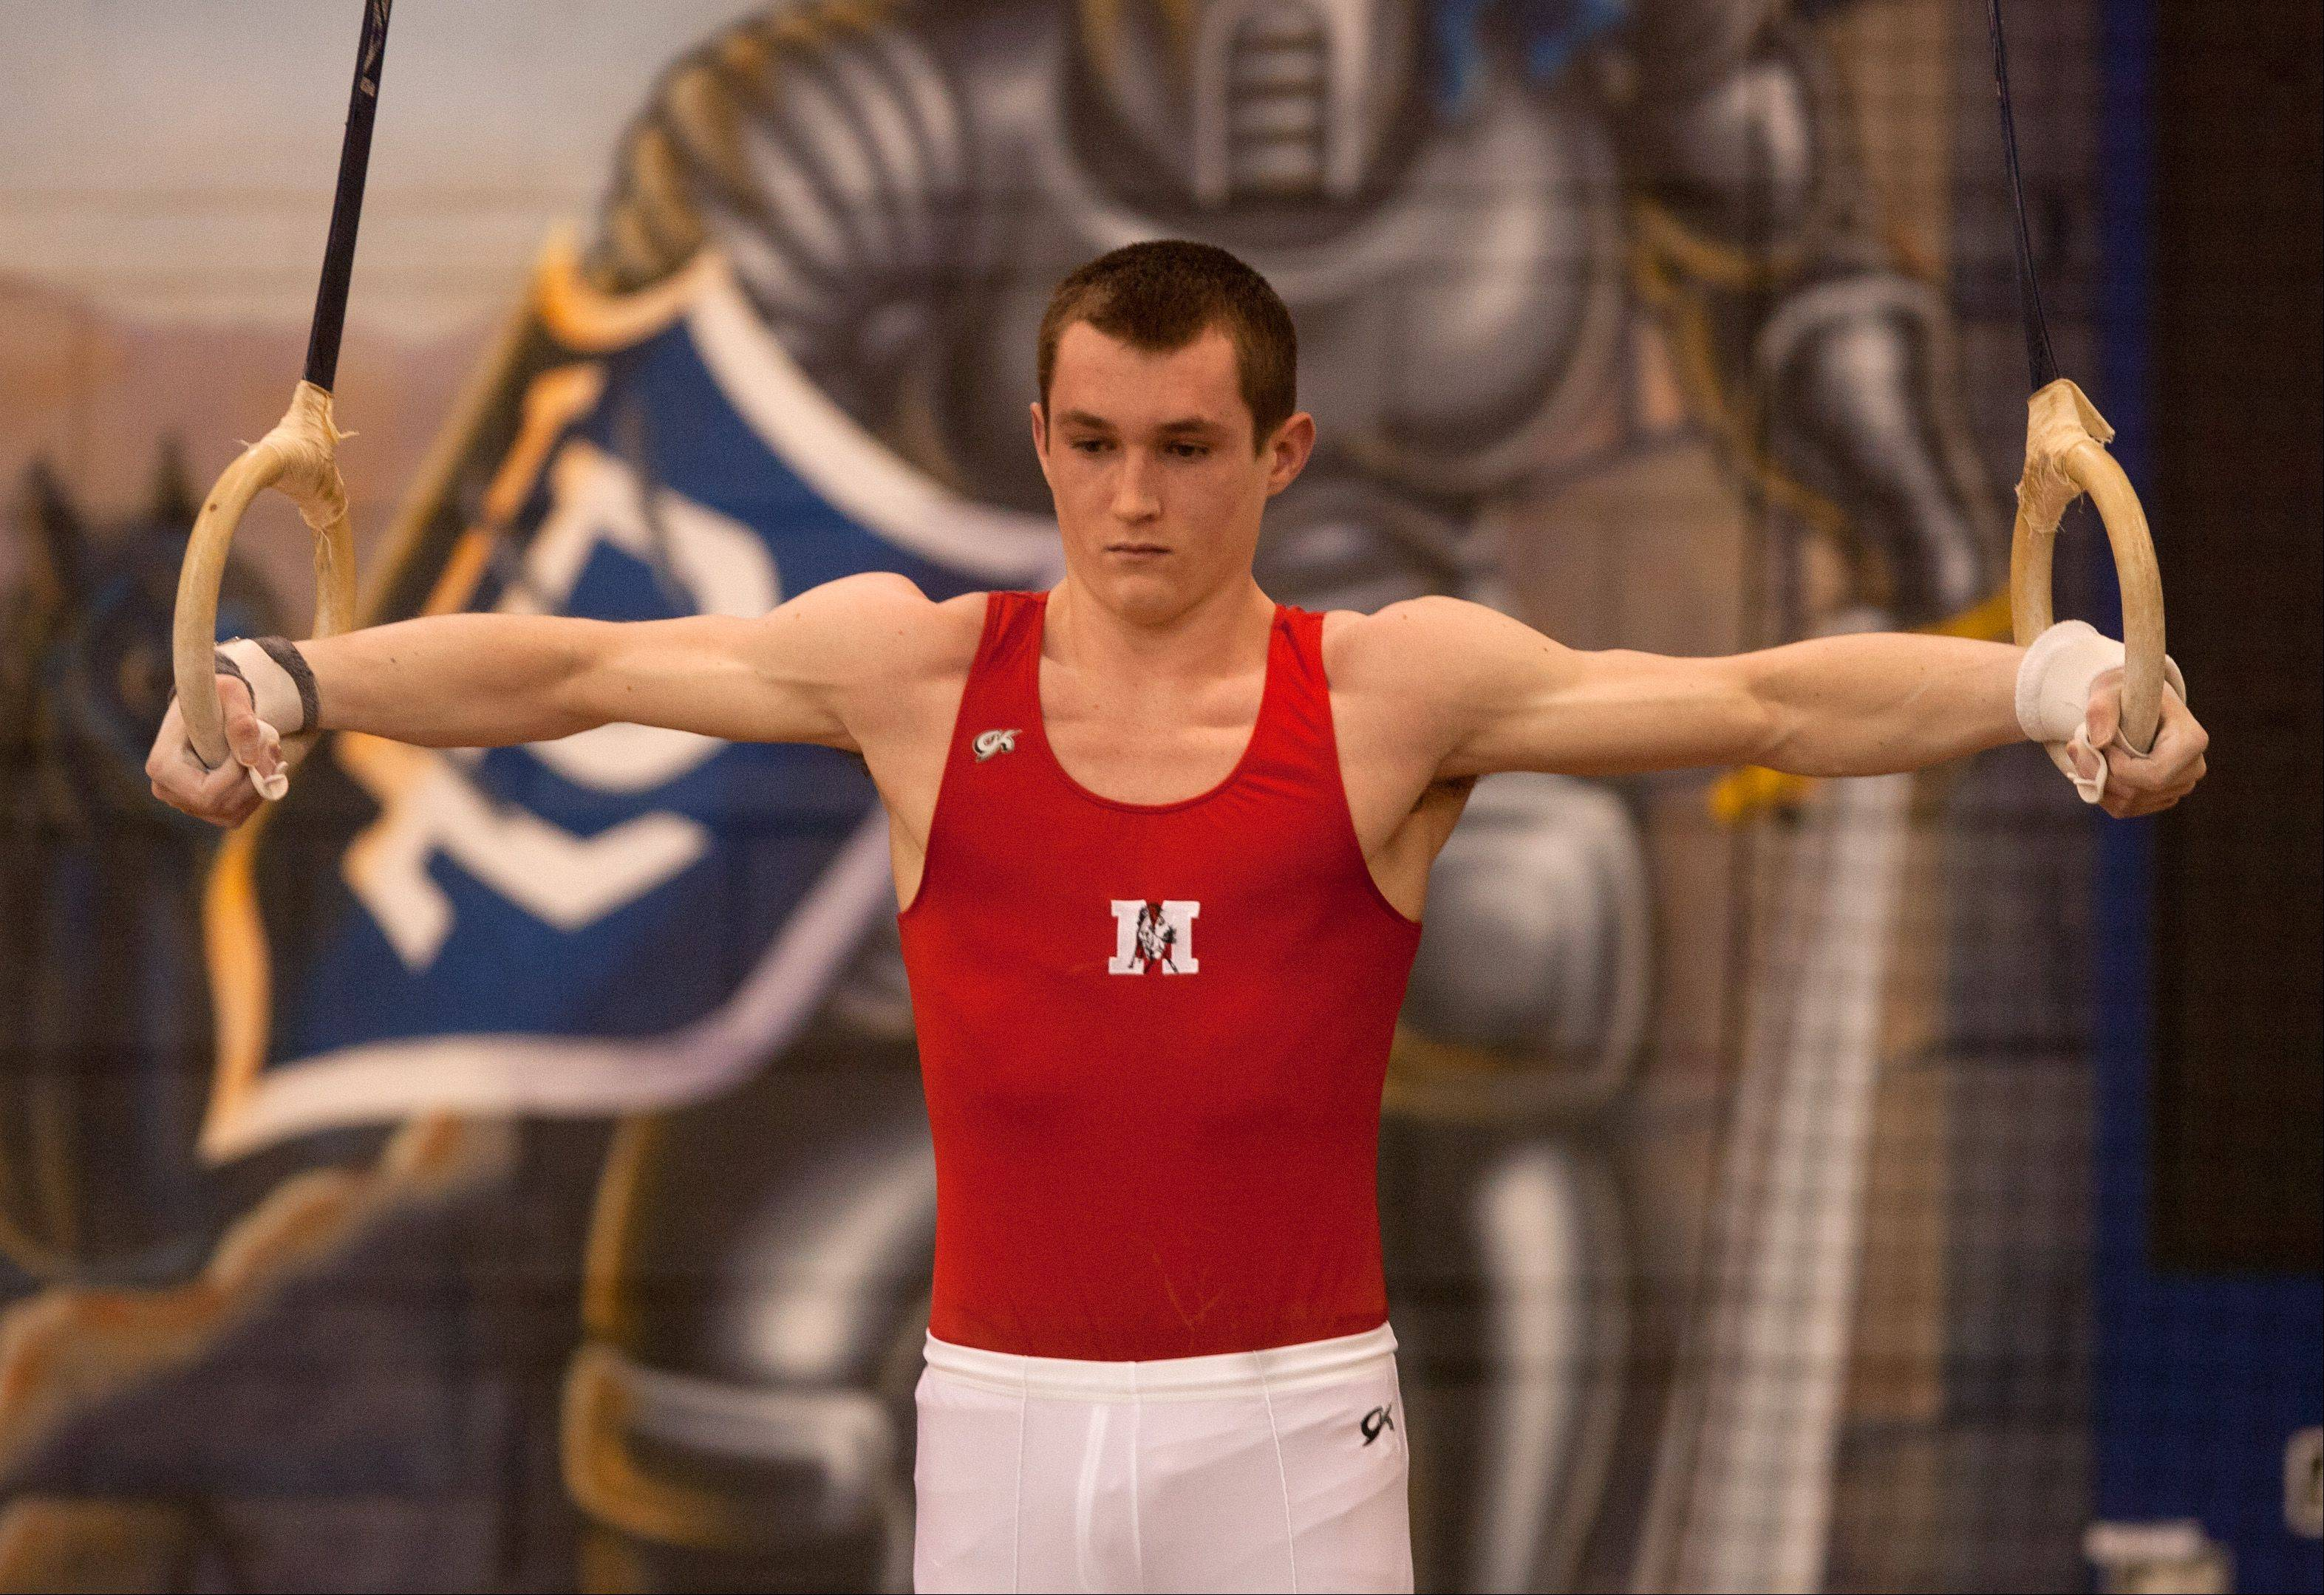 Mundelein's Cameron Mueller performs his still rings routine during the Lake Park High School Ralph Krupke Boys Gymnastics Invitational.